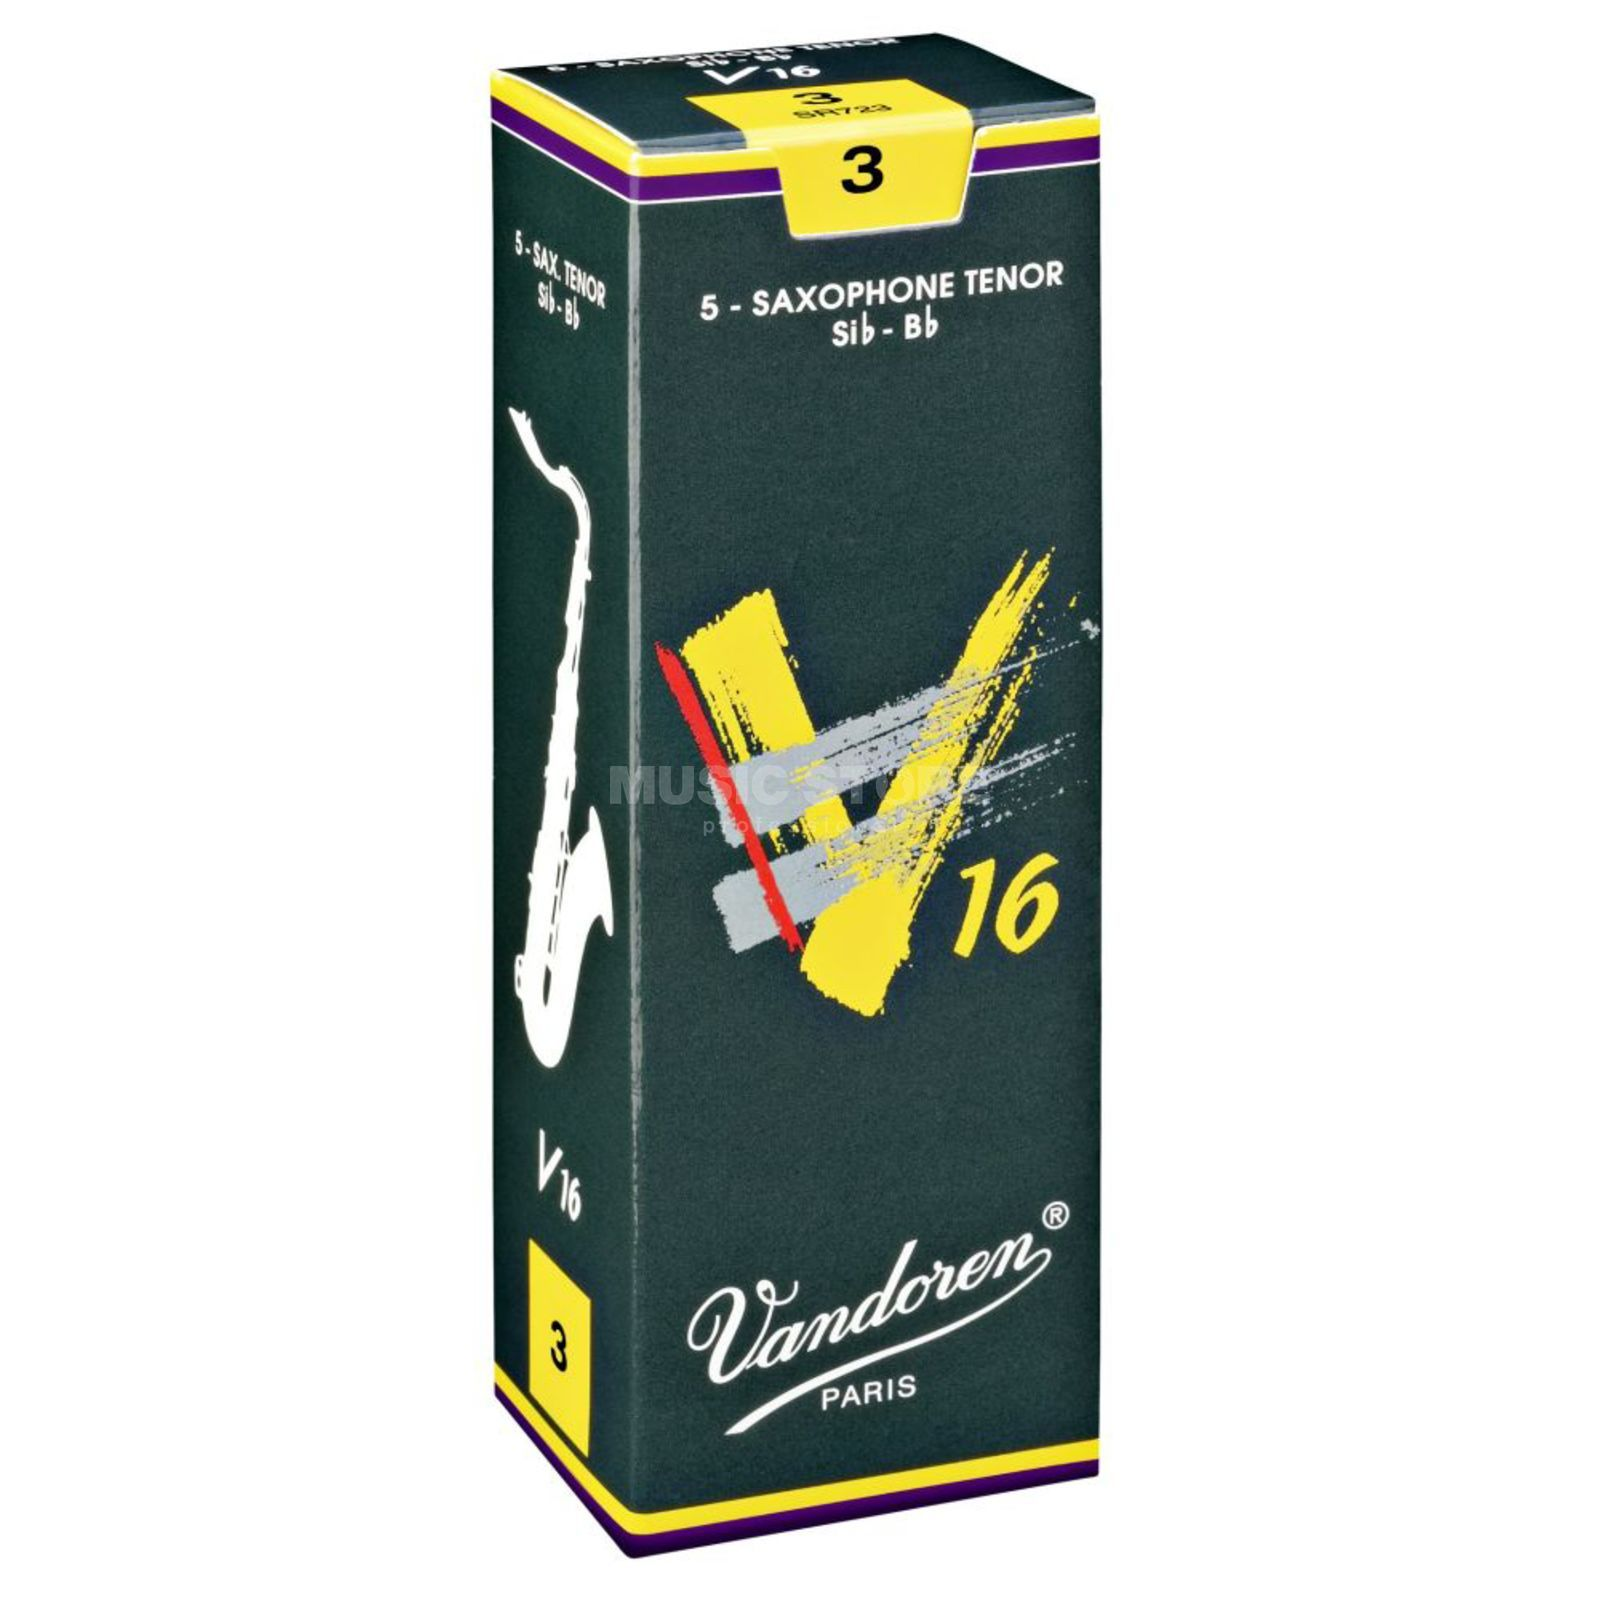 Vandoren V16 Tenor Sax Reeds 1.5 Box of 5 Product Image